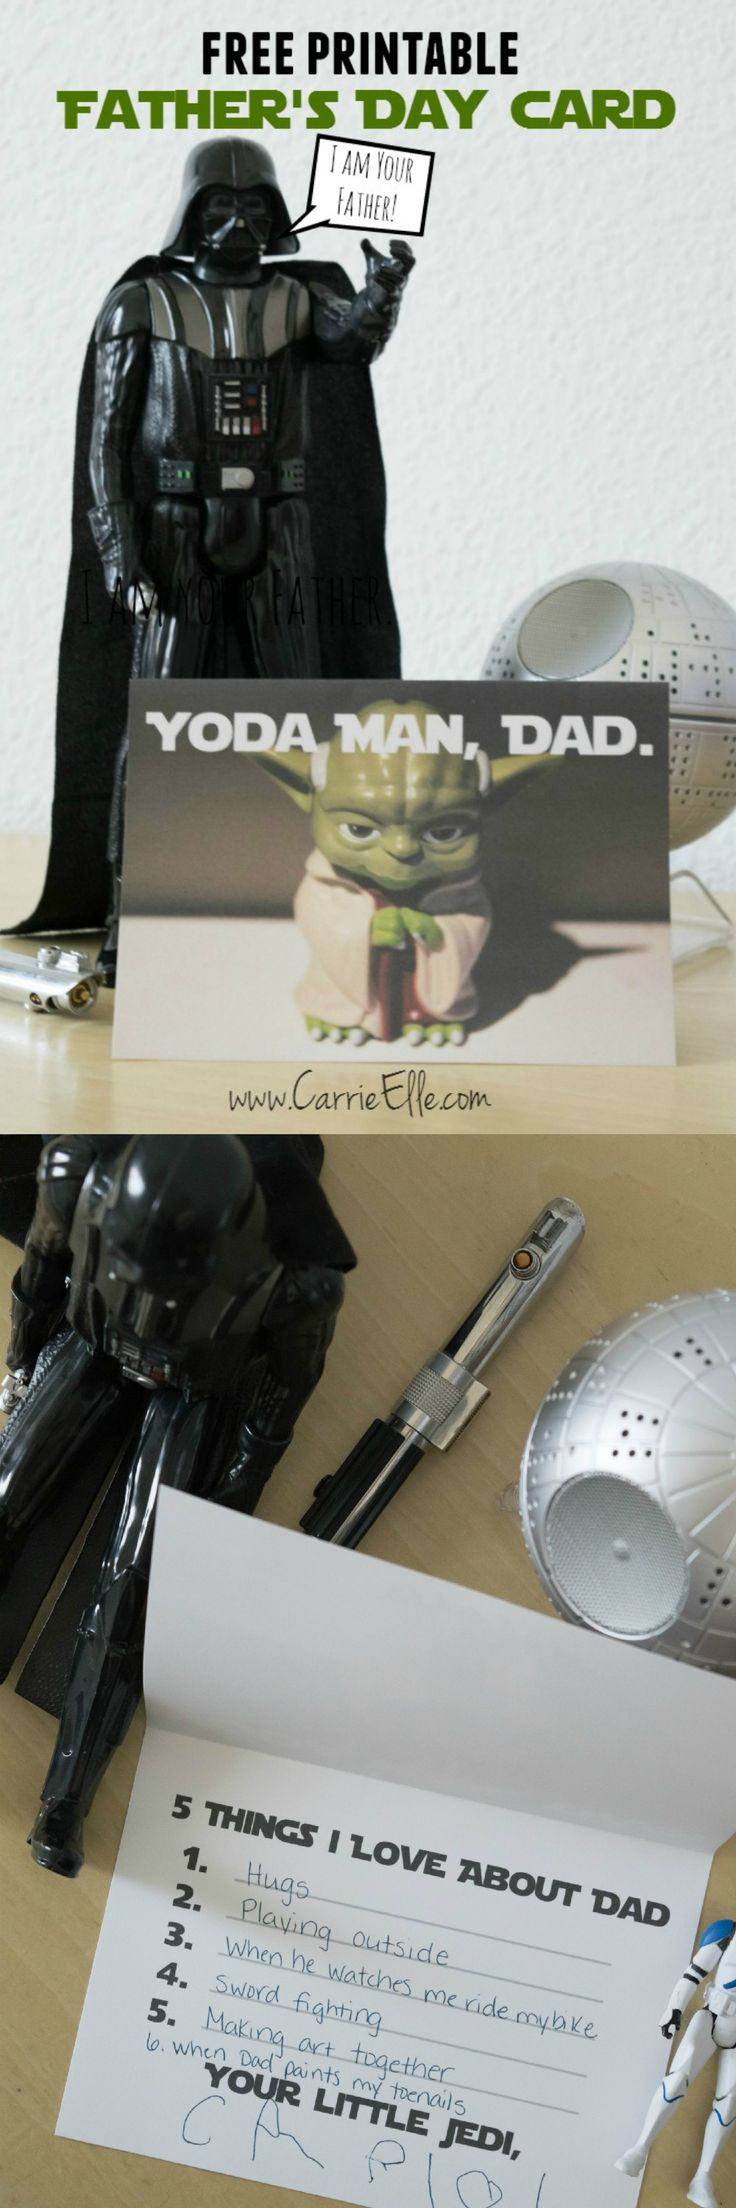 Free printable Father's Day cards, Star Wars style! This is SO fun!...